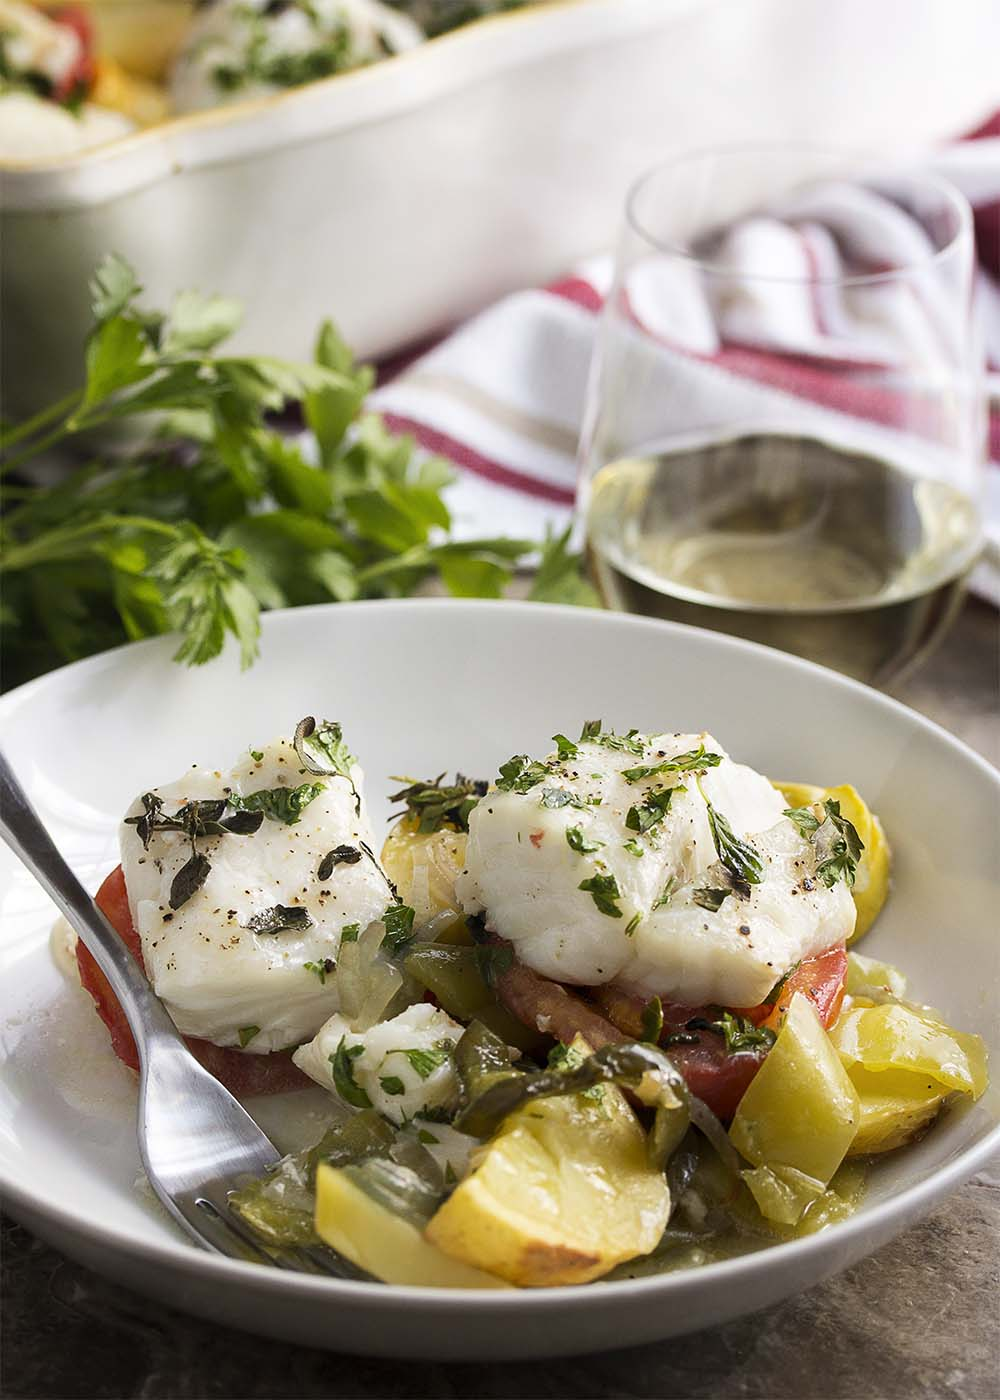 A shallow bowl filled with baked Mediterranean cod with mixed vegetables. A fork in the bowl and a glass of wine in the background.